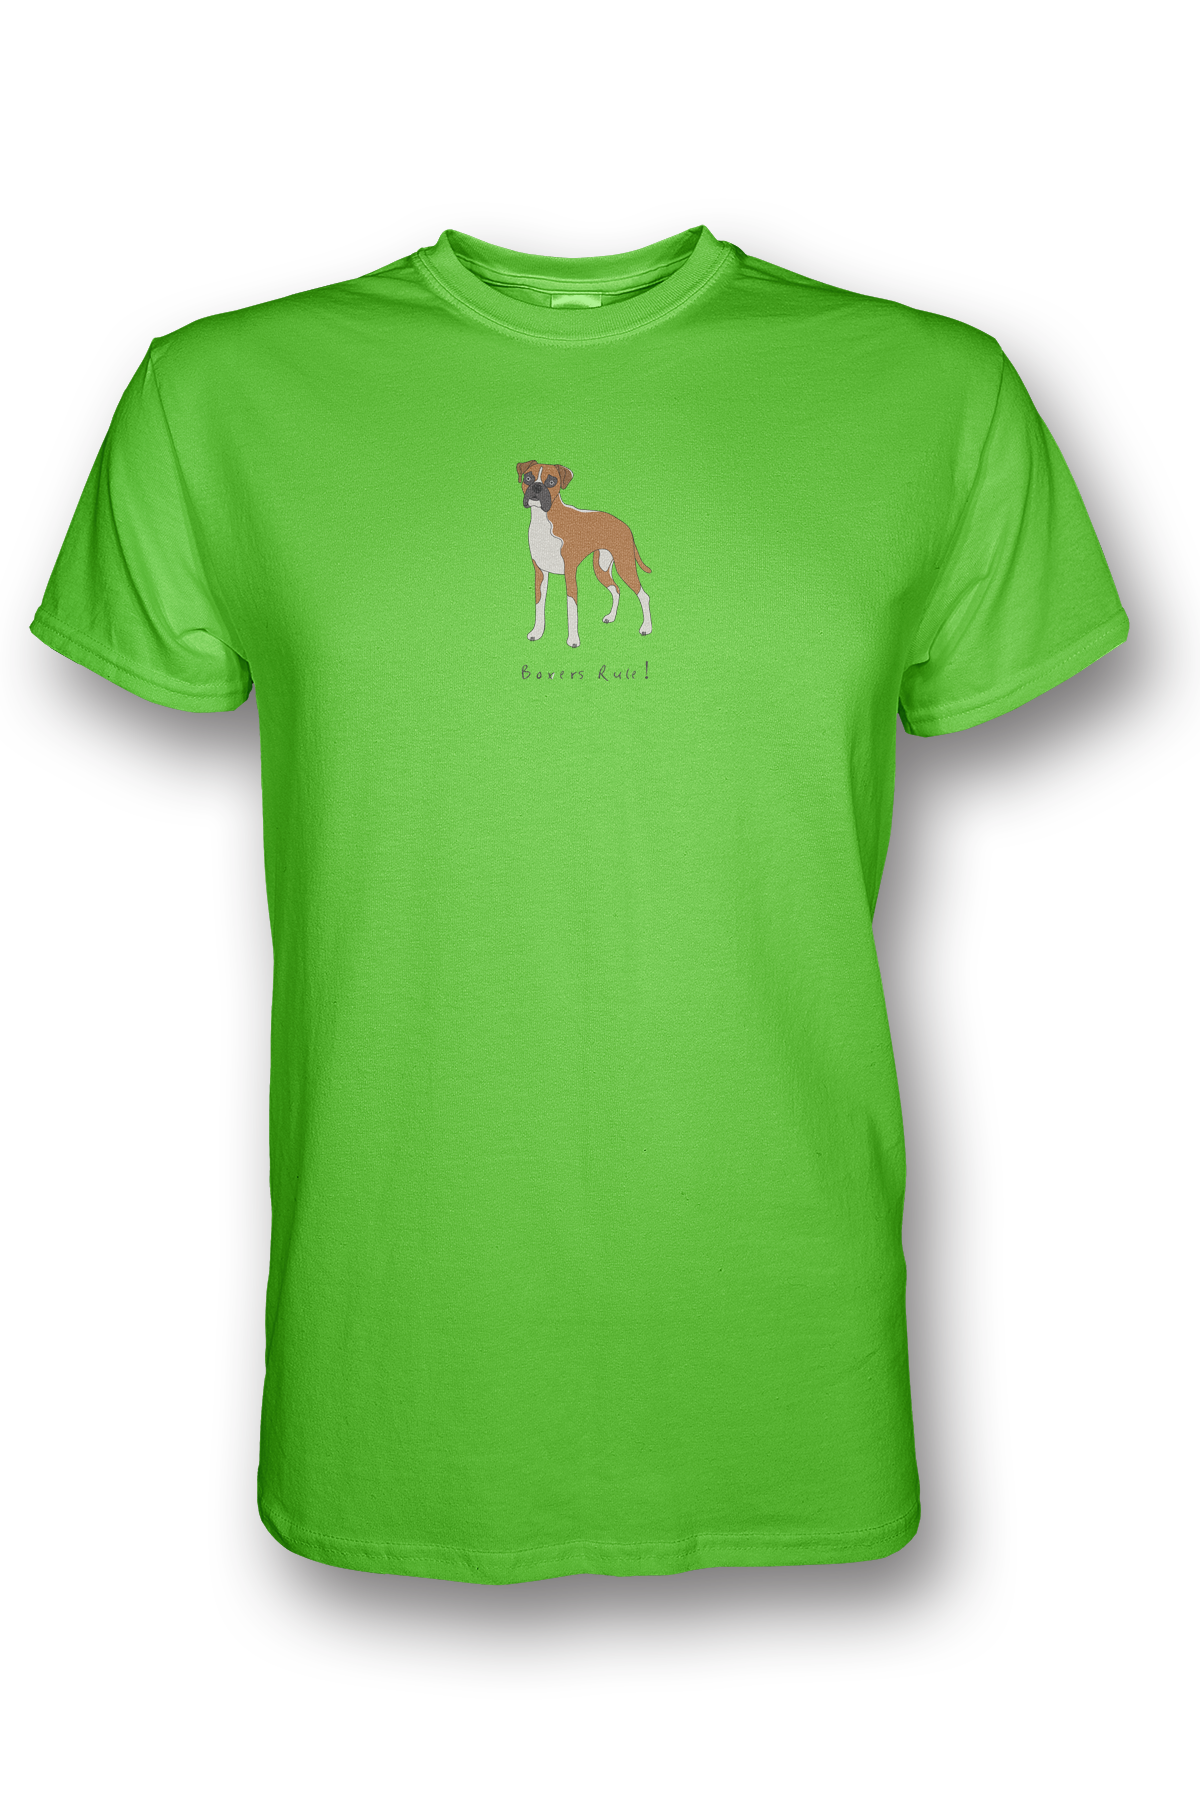 Mens Crew Neck T-Shirt - Boxers Rule! Neon Green